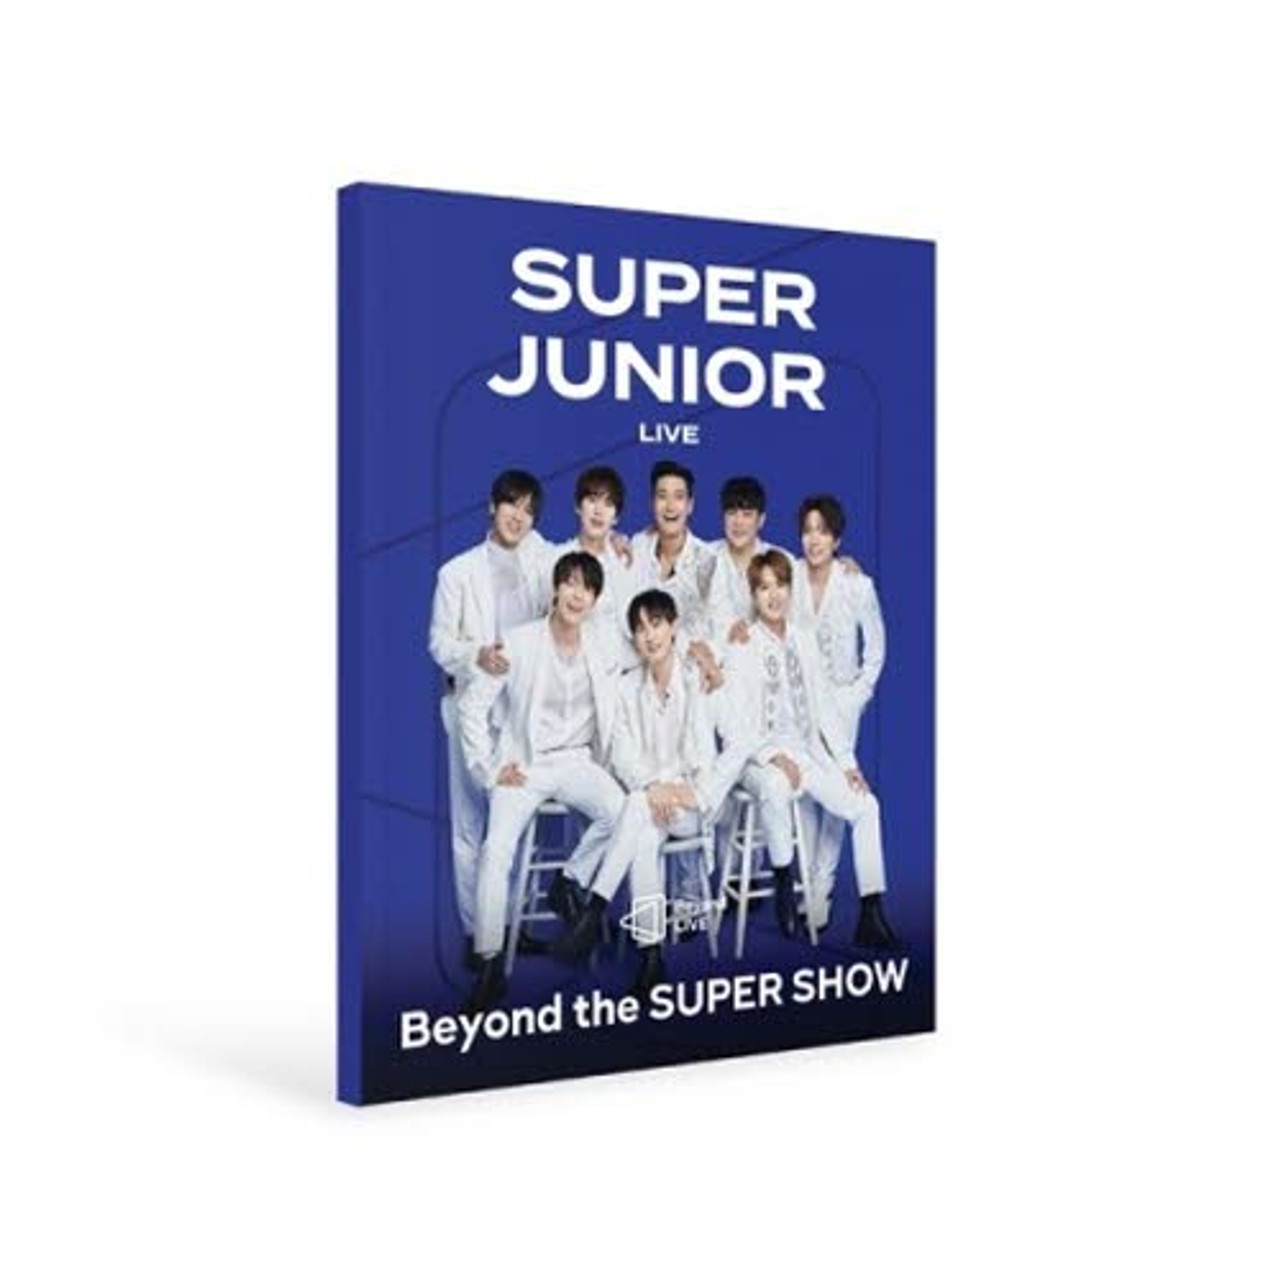 SUPER JUNIOR -Beyond LIVE BROCHURE SUPER JUNIOR [Beyond the SUPER SHOW]